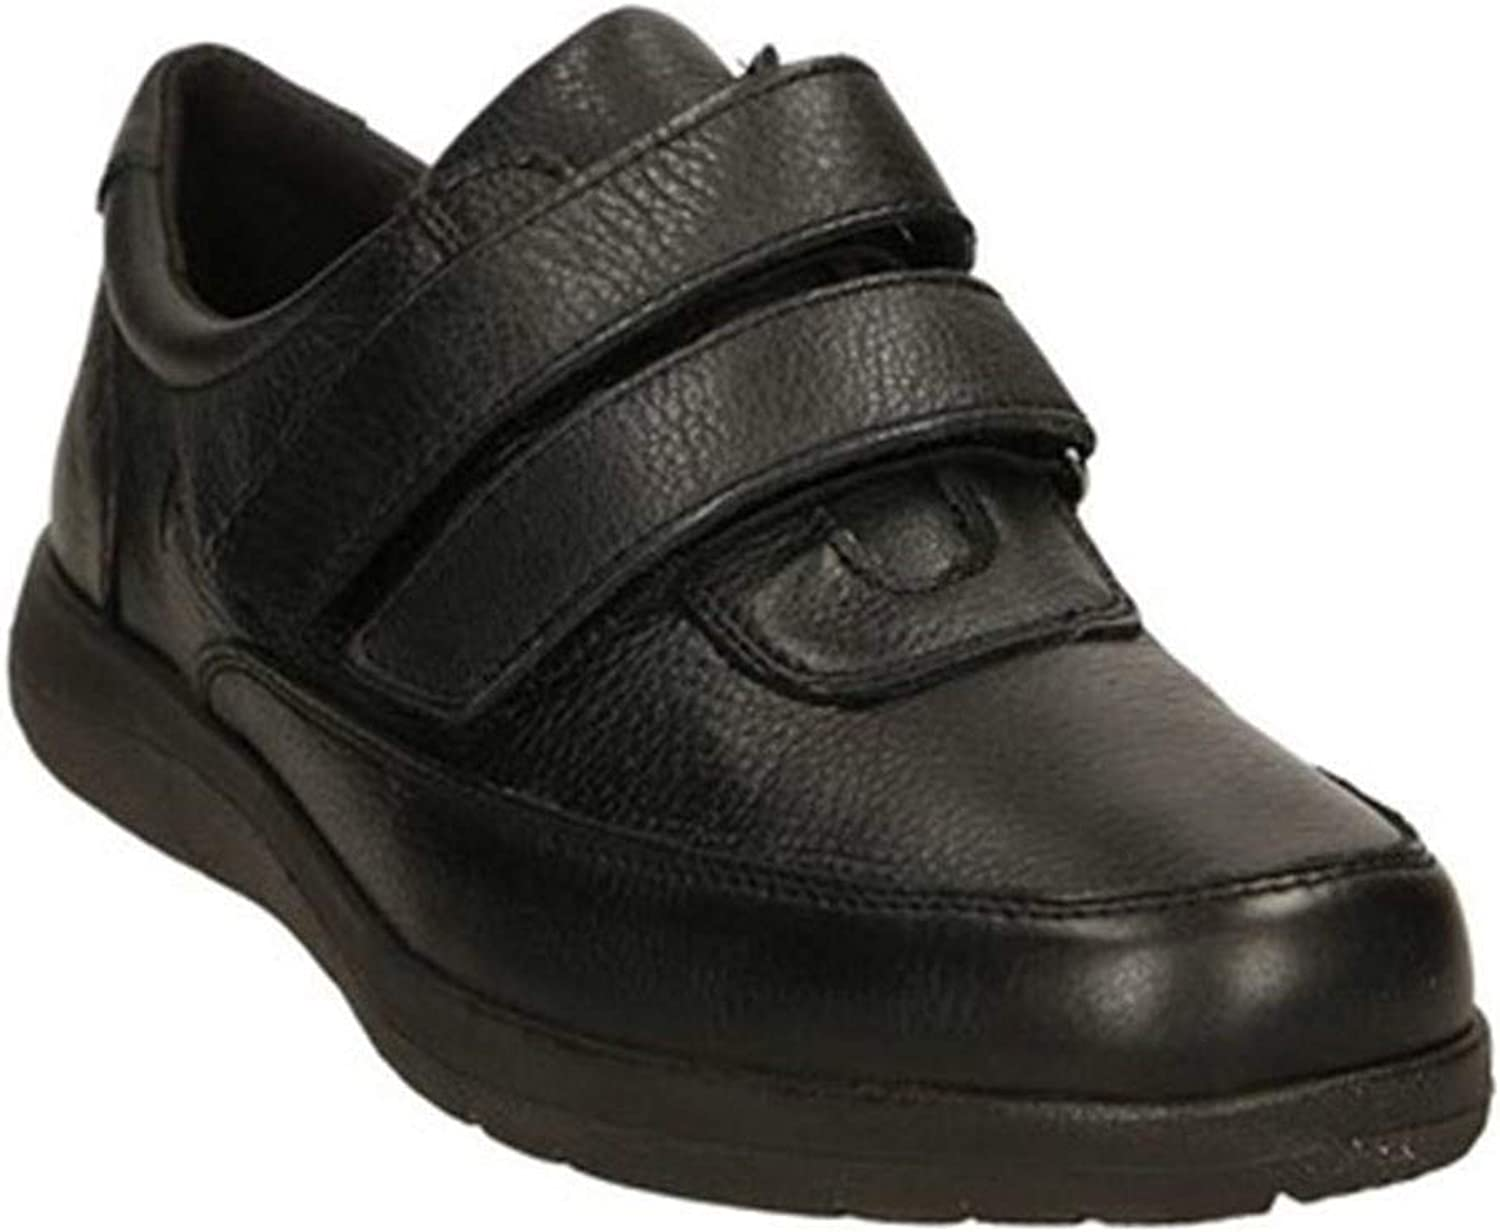 VALLEgreen Sneakers Men's shoes in Black Leather 36802-BLACK